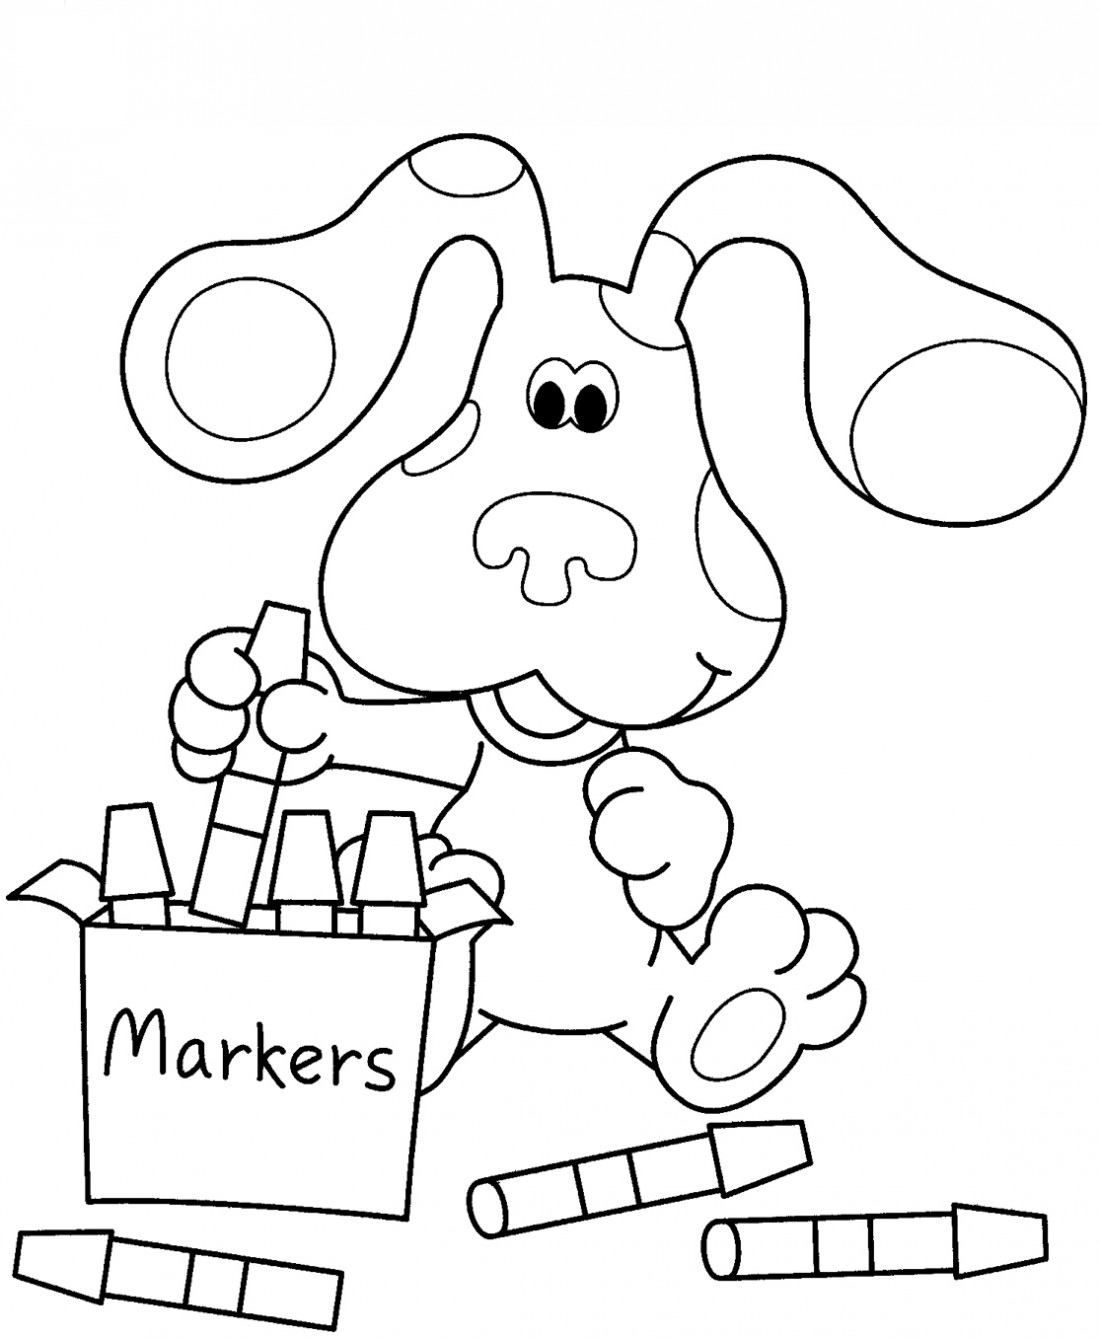 Coloring Pages Crayon Coloring Pages Printable the day crayons quit coloring page az pages printable pages